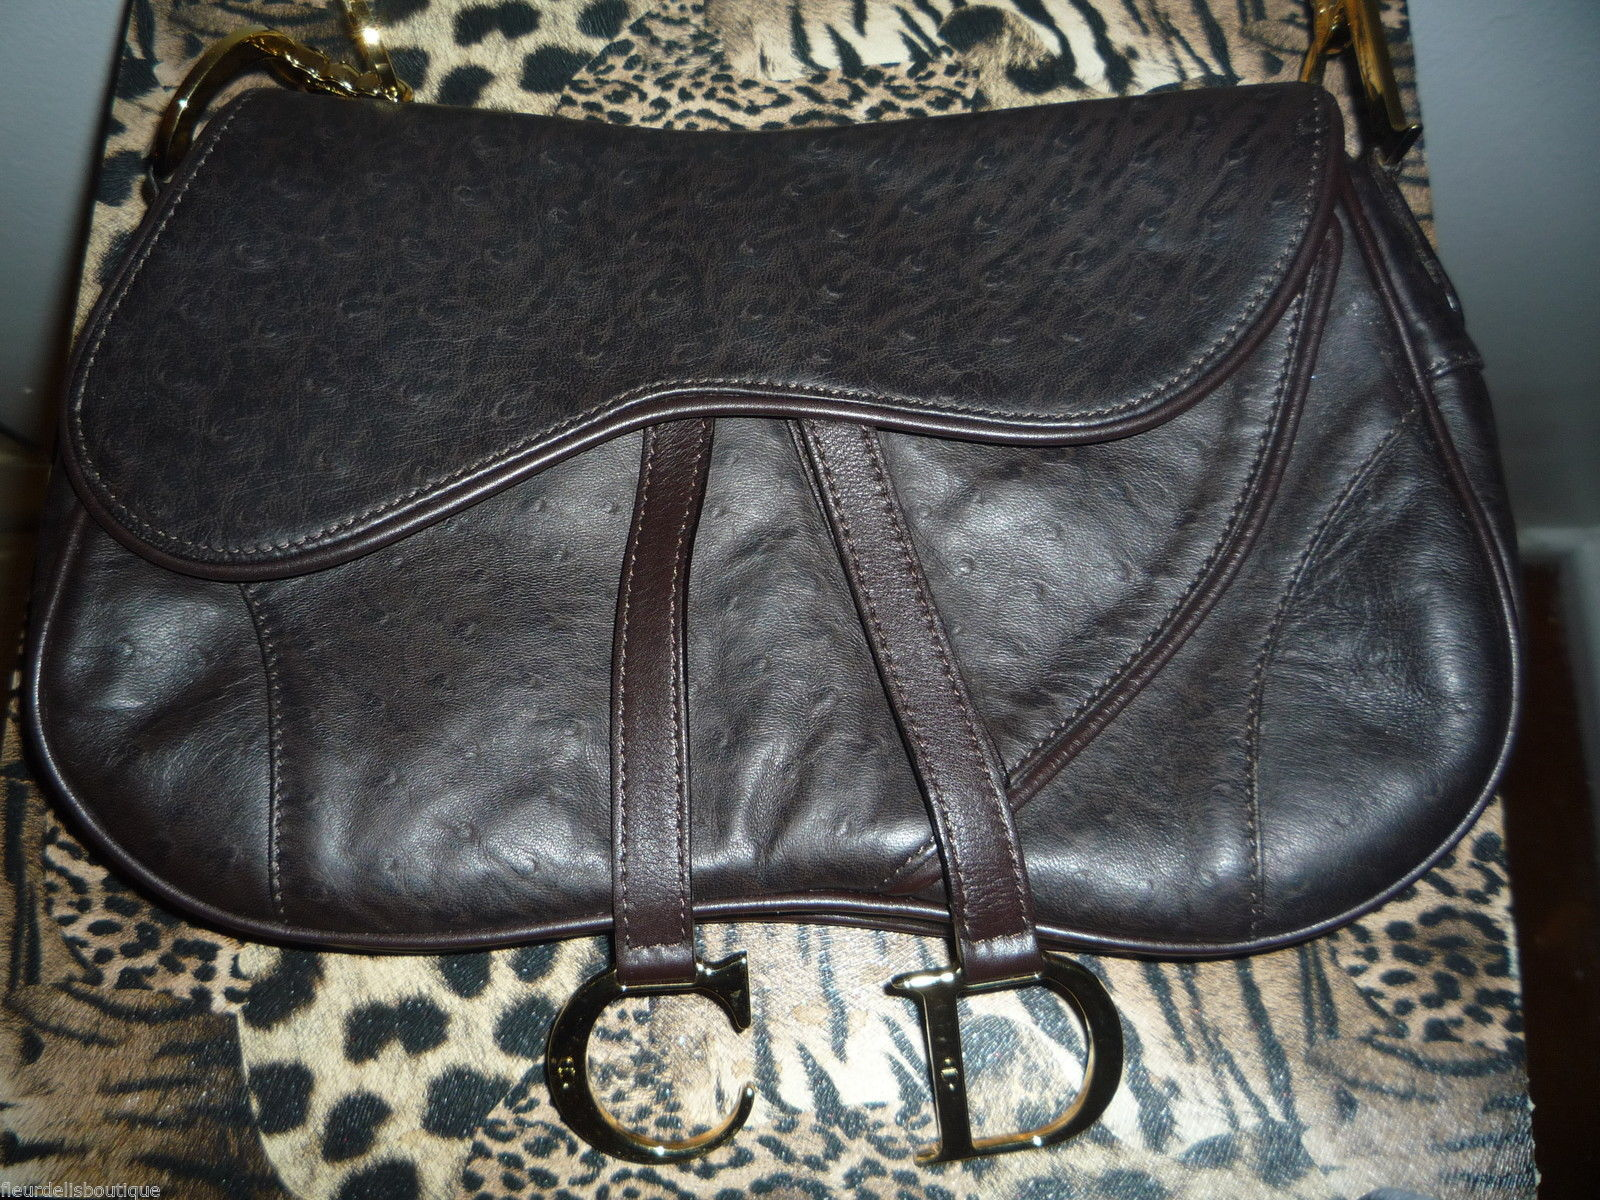 9652b5eb7c04 Authentic Christian Dior Ostrich Saddle Bag and 50 similar items. 57